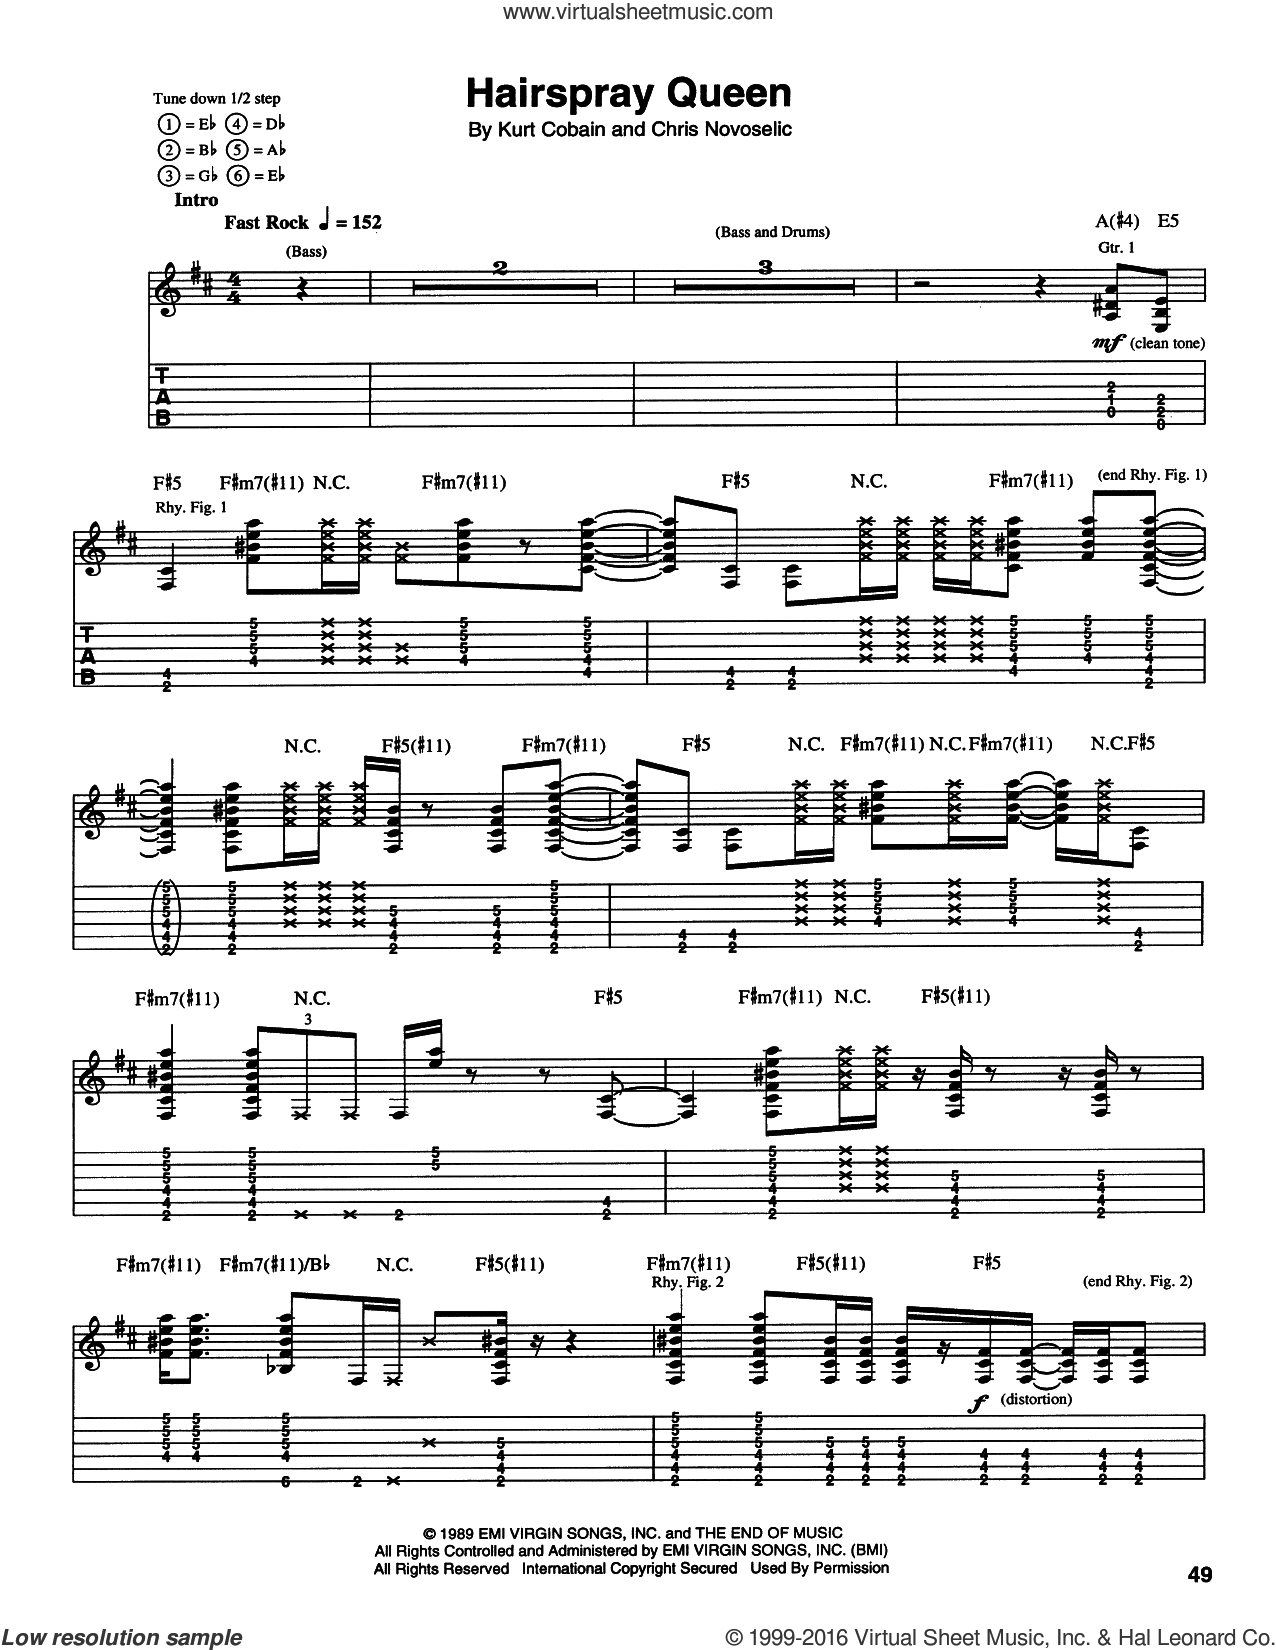 Hairspray Queen sheet music for guitar (tablature) by Nirvana, Krist Novoselic and Kurt Cobain, intermediate skill level